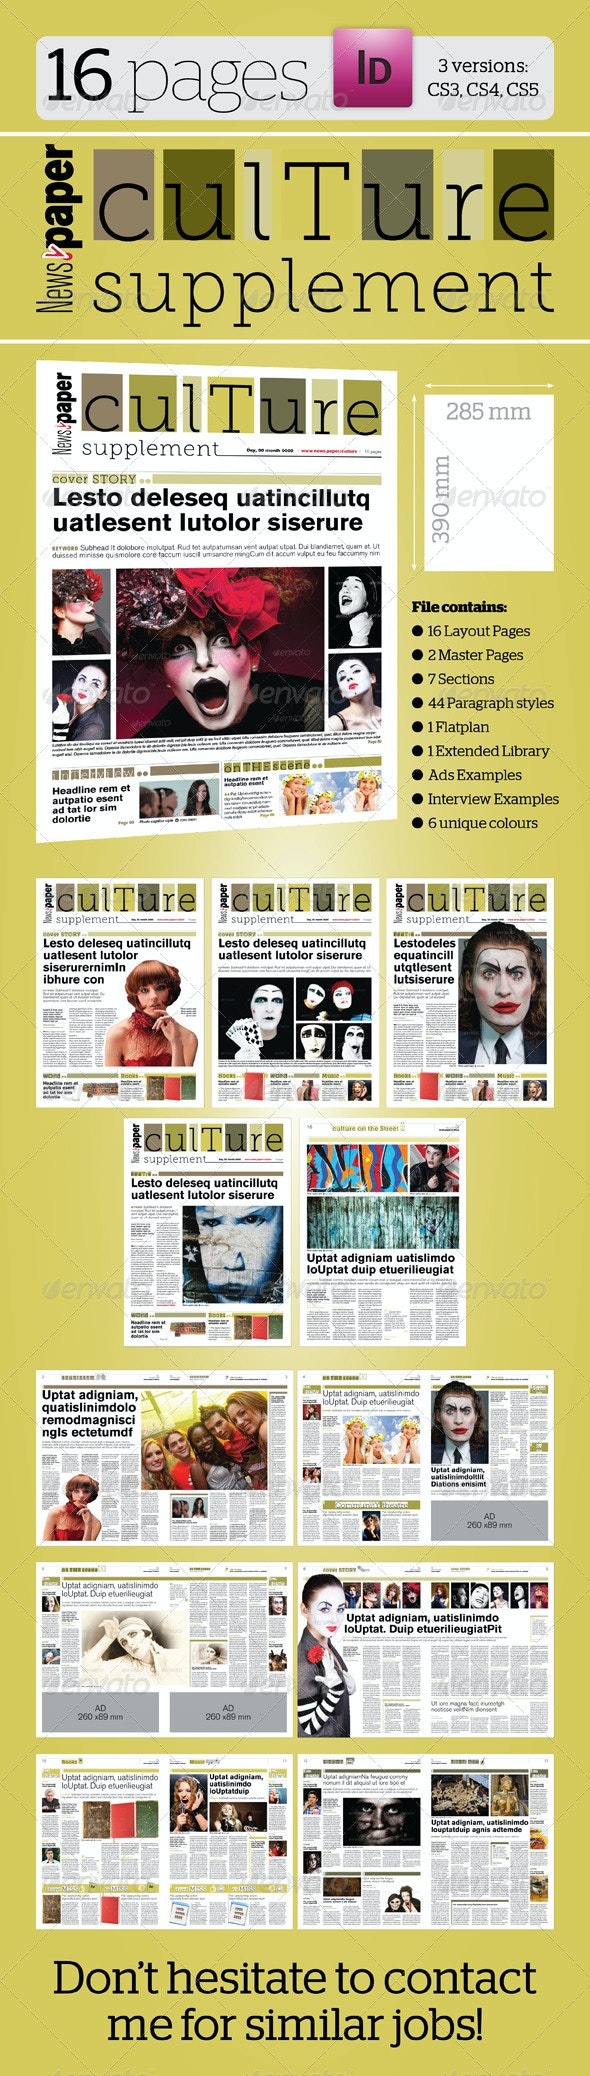 16 Pages Culture Supplement For News.paper - Newsletters Print Templates